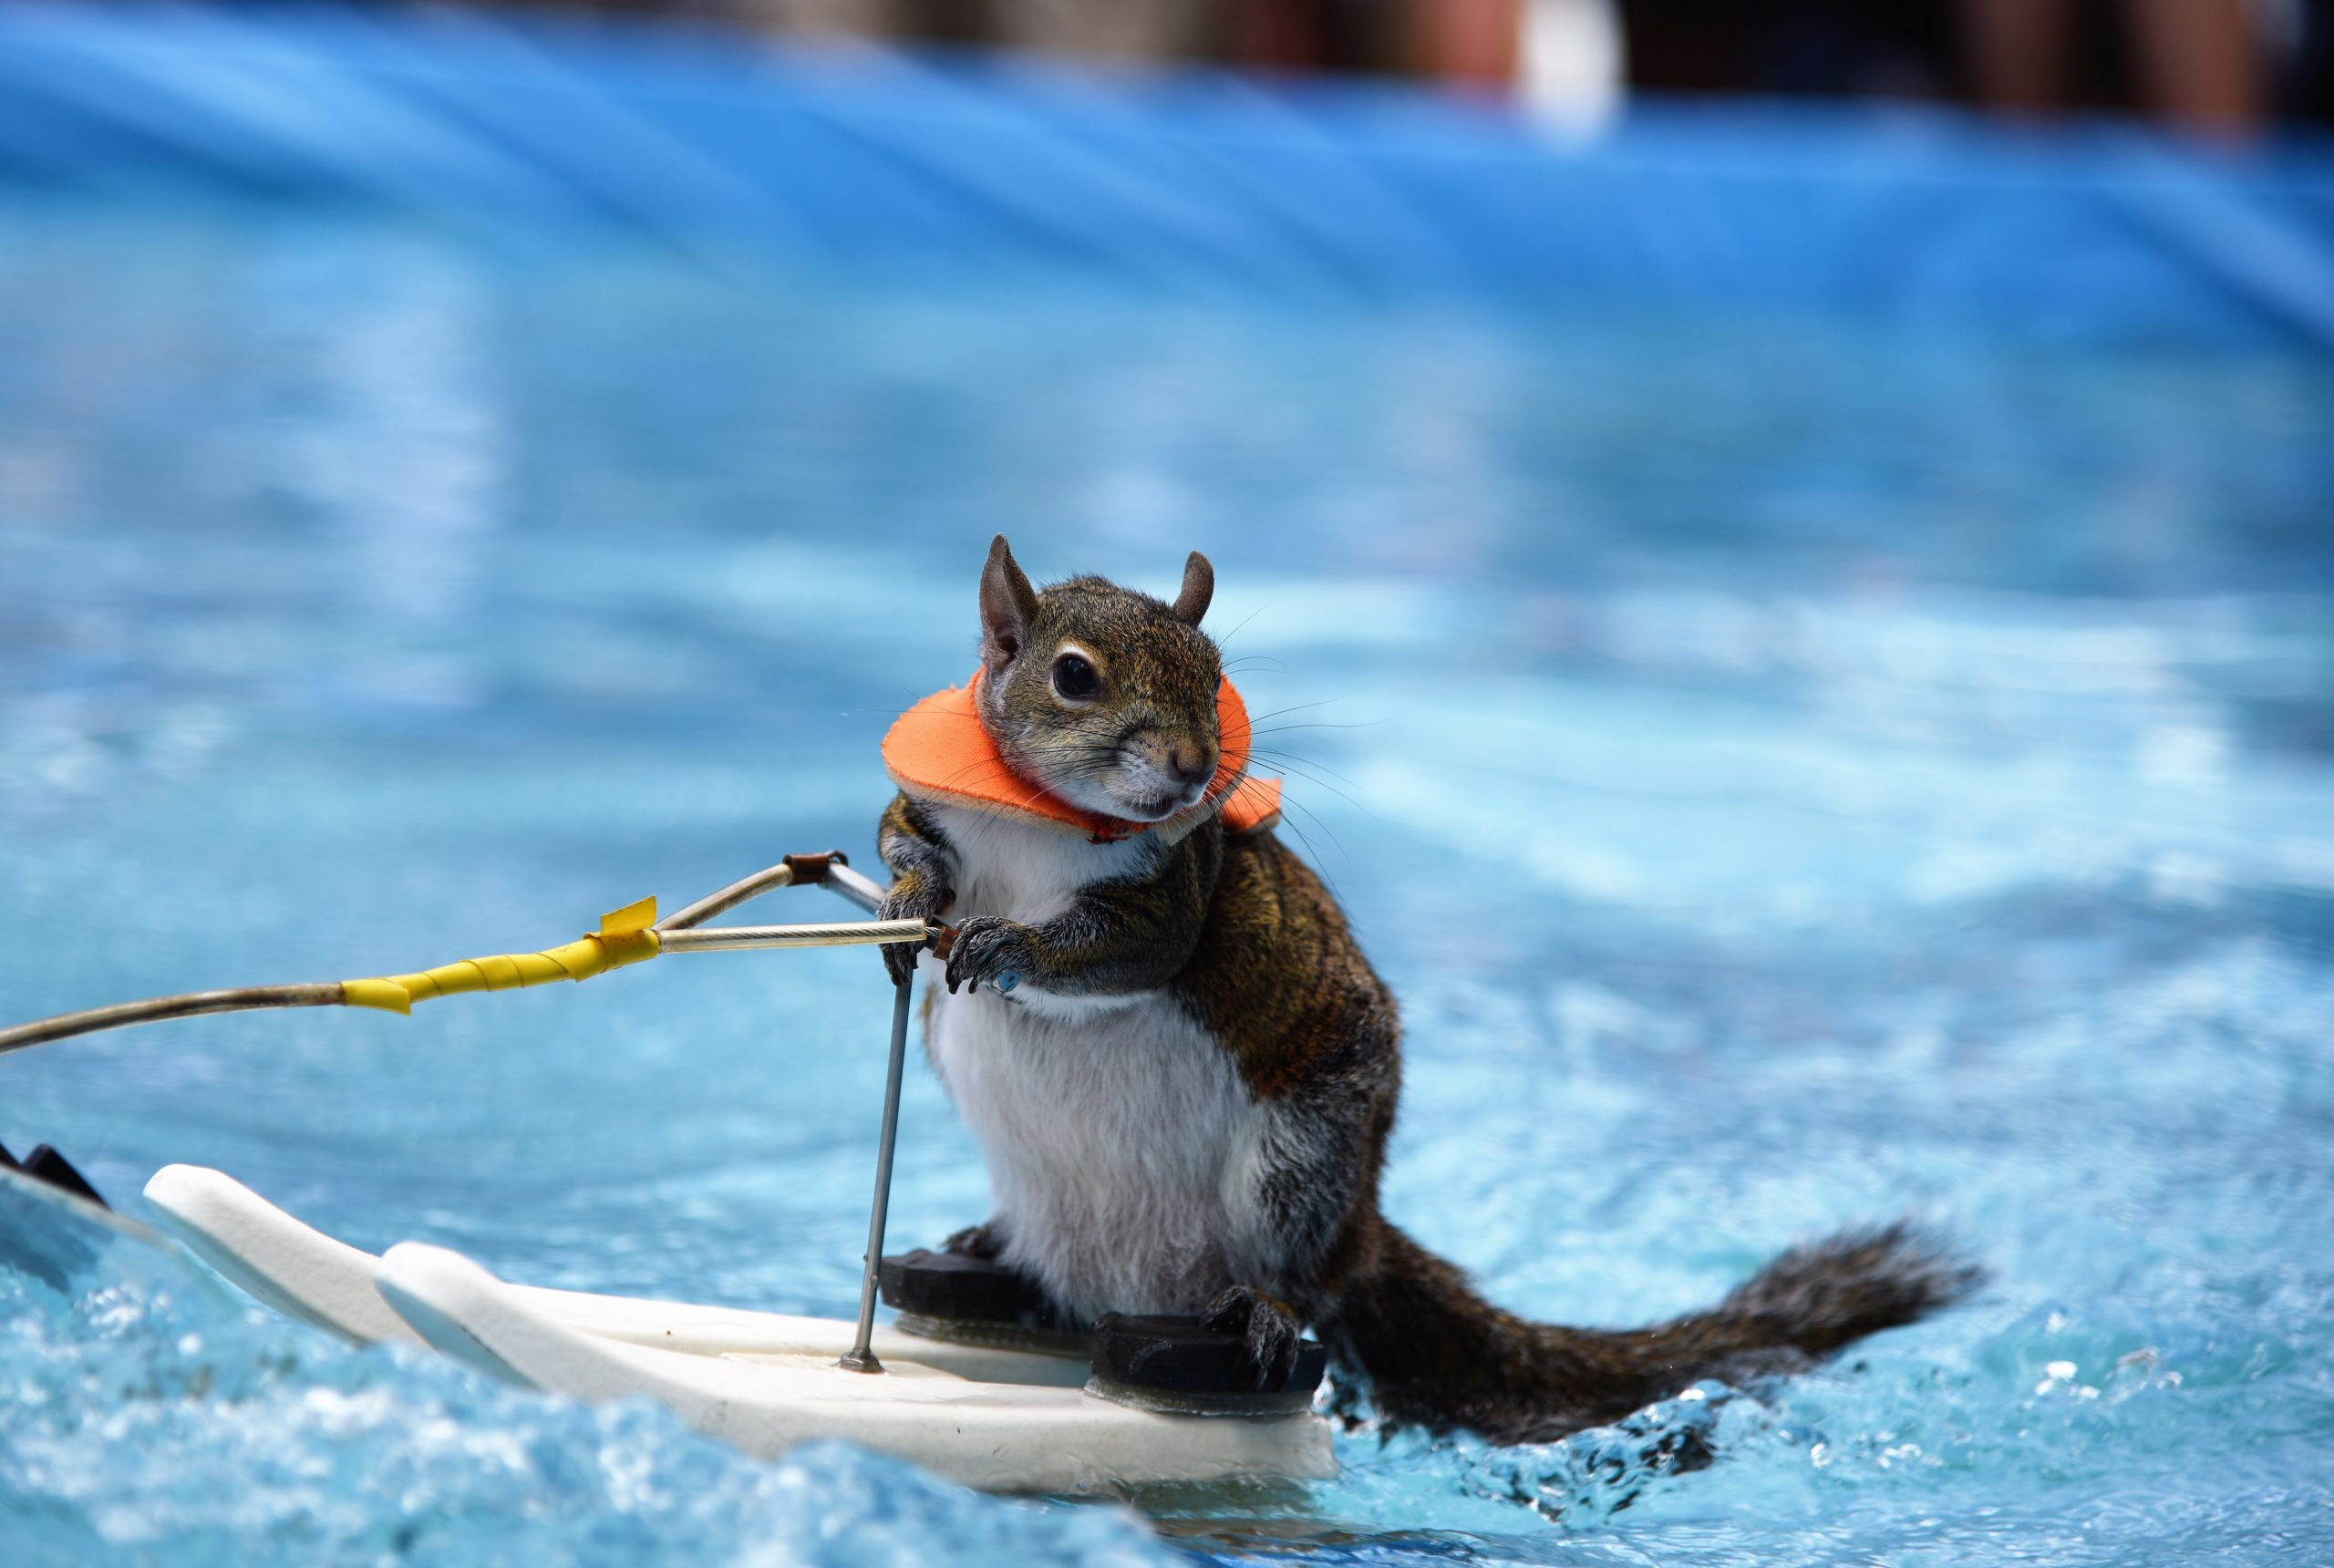 Twiggy, the Trained Water-Skiing Squirrel Won't Perform for Public Entertainment in Toronto Anymore!